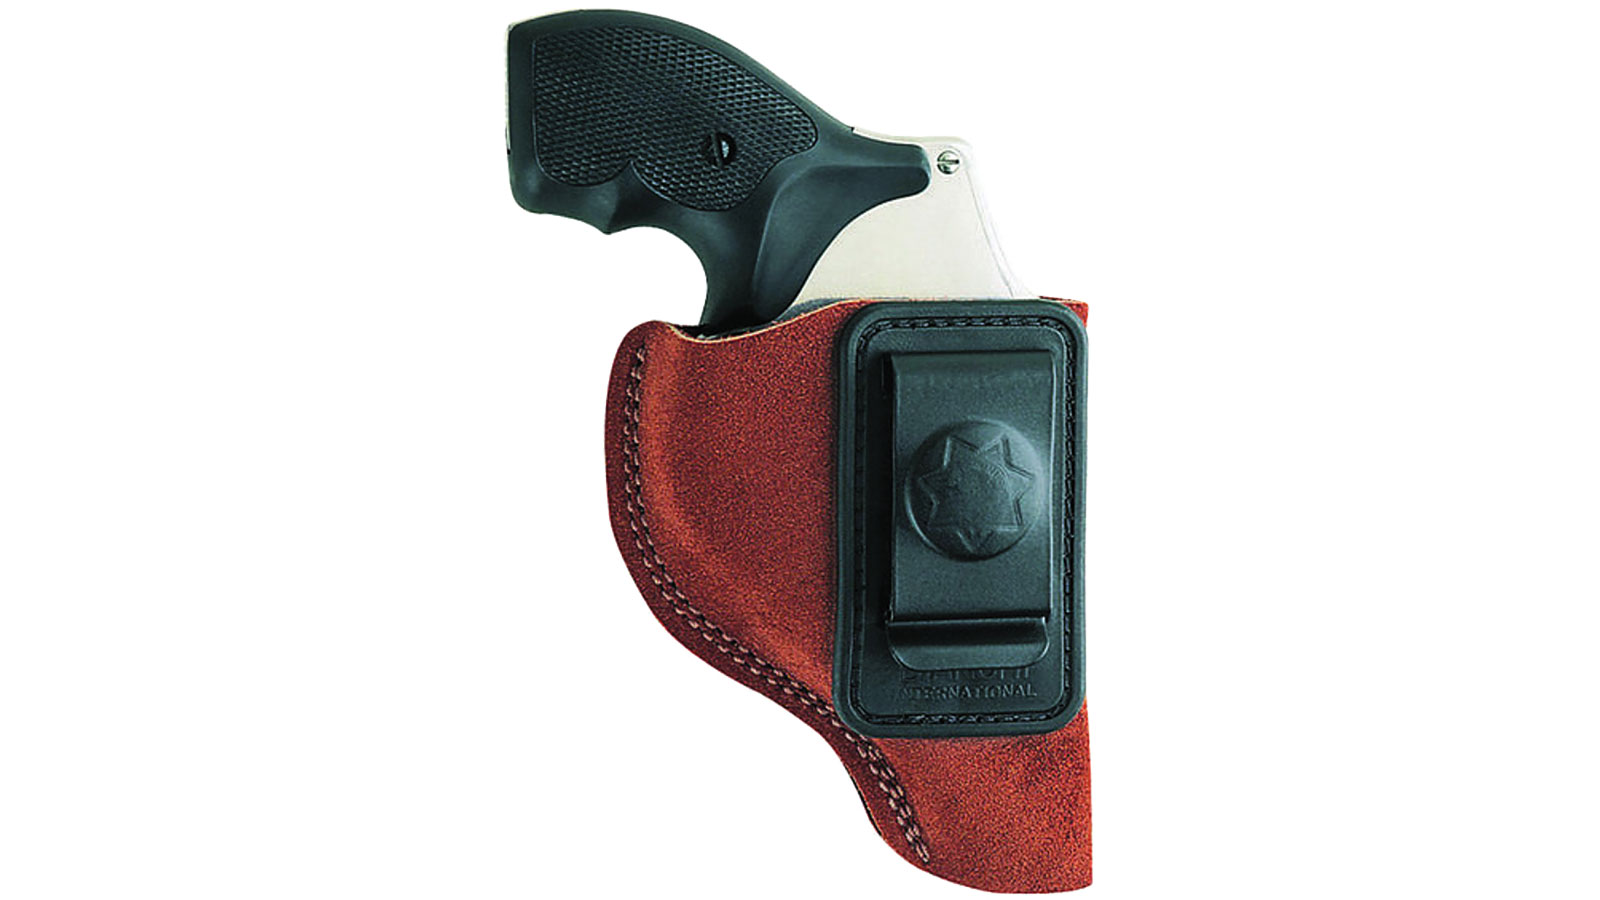 Bianchi 10380 6 Waistband 3 Barrel Charter Arms; Colt; Ruger; S&W; Taurus Leather Tan in.